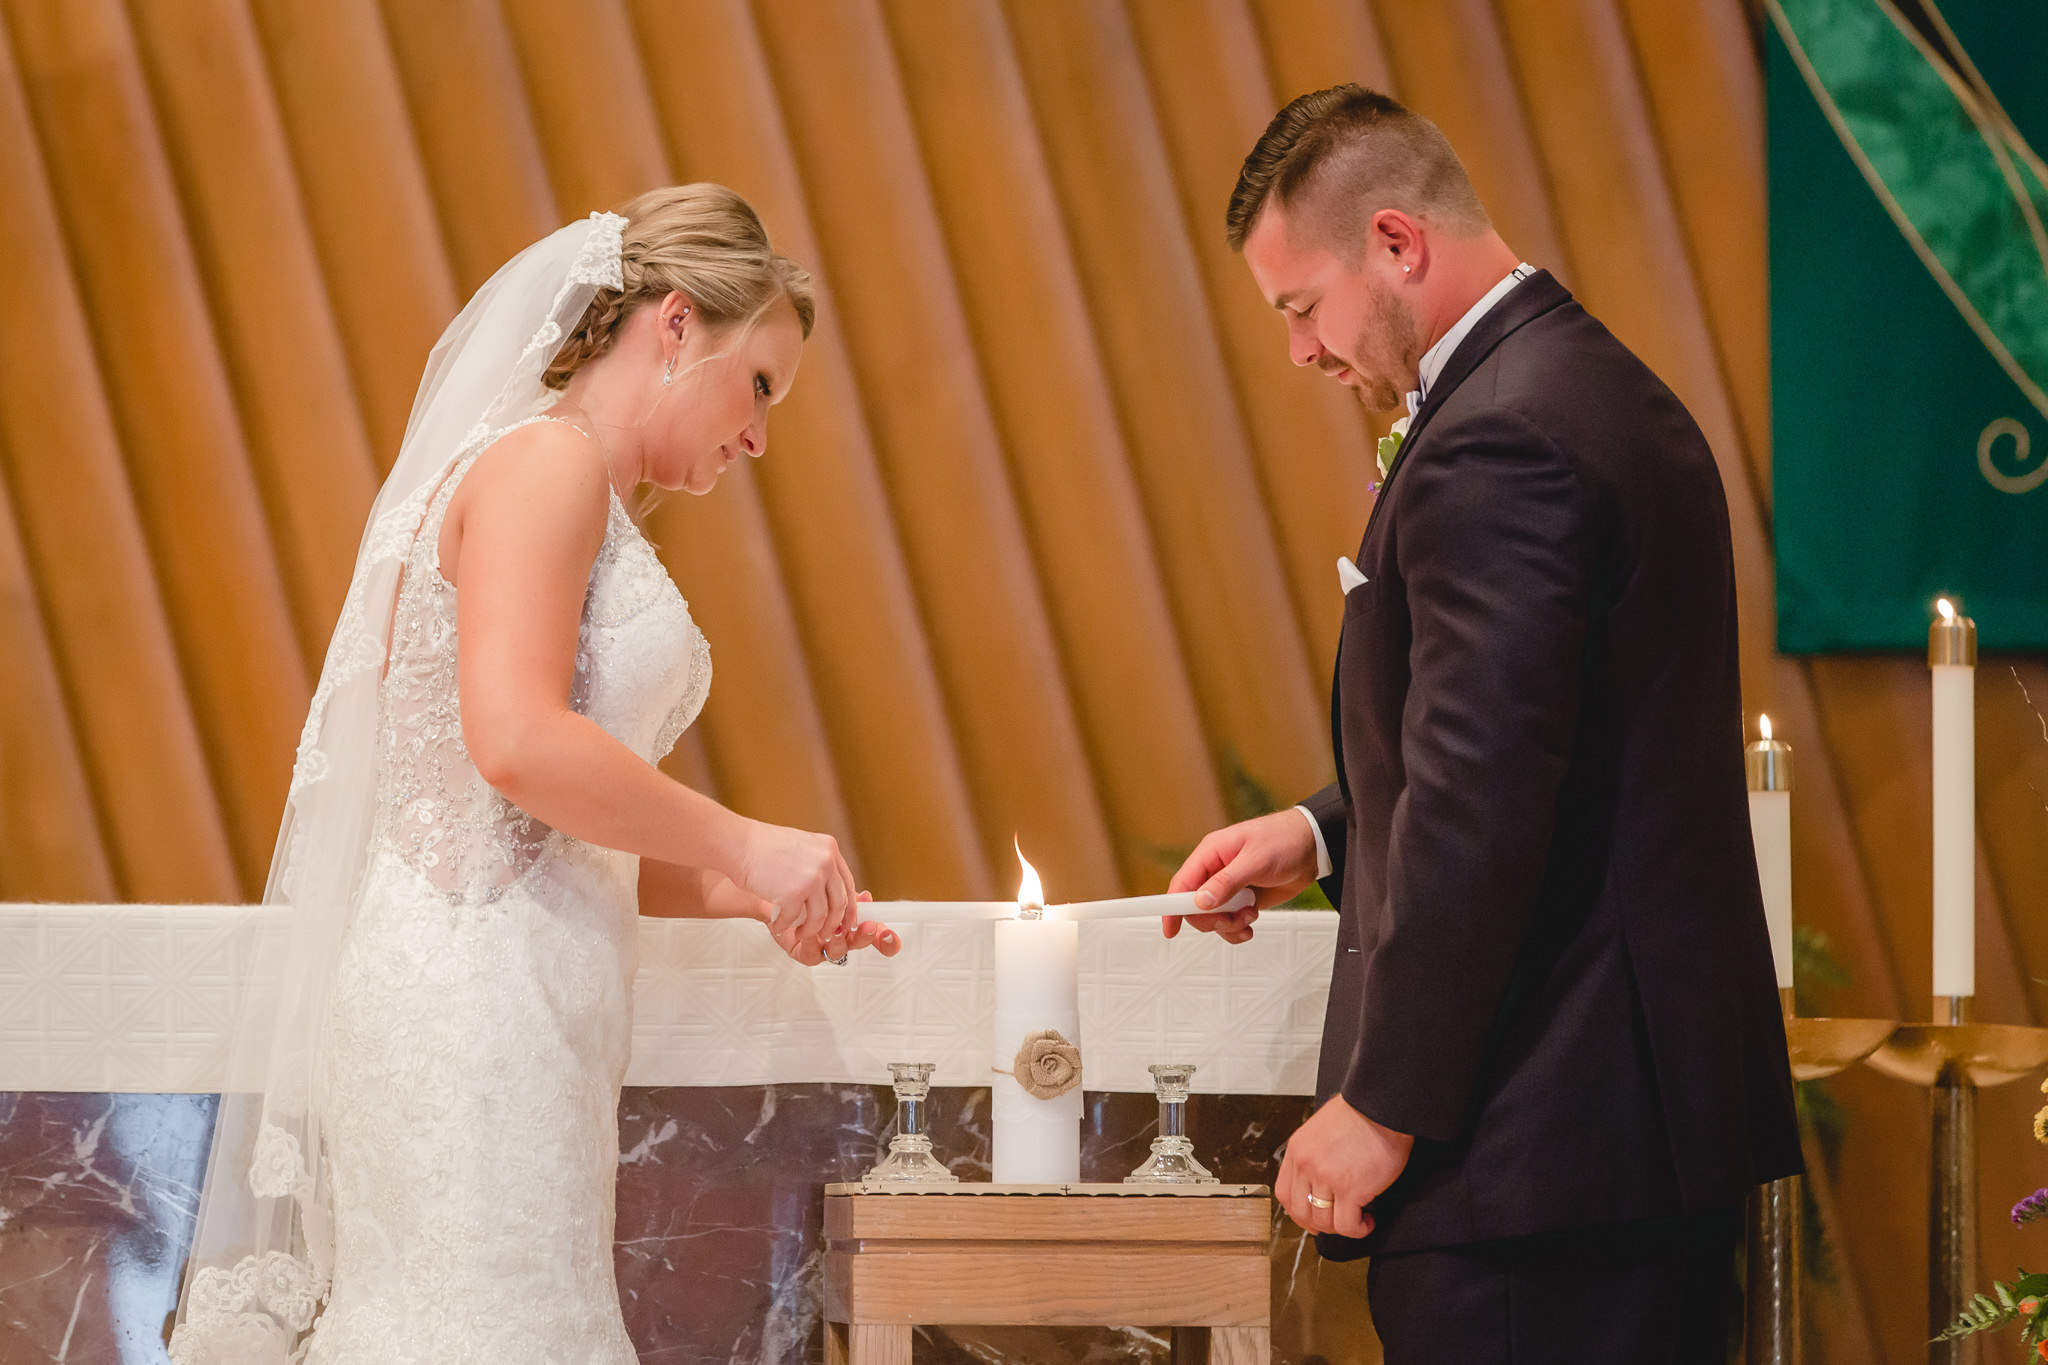 Bride and groom light the unity candle during their St. Titus Church wedding ceremony